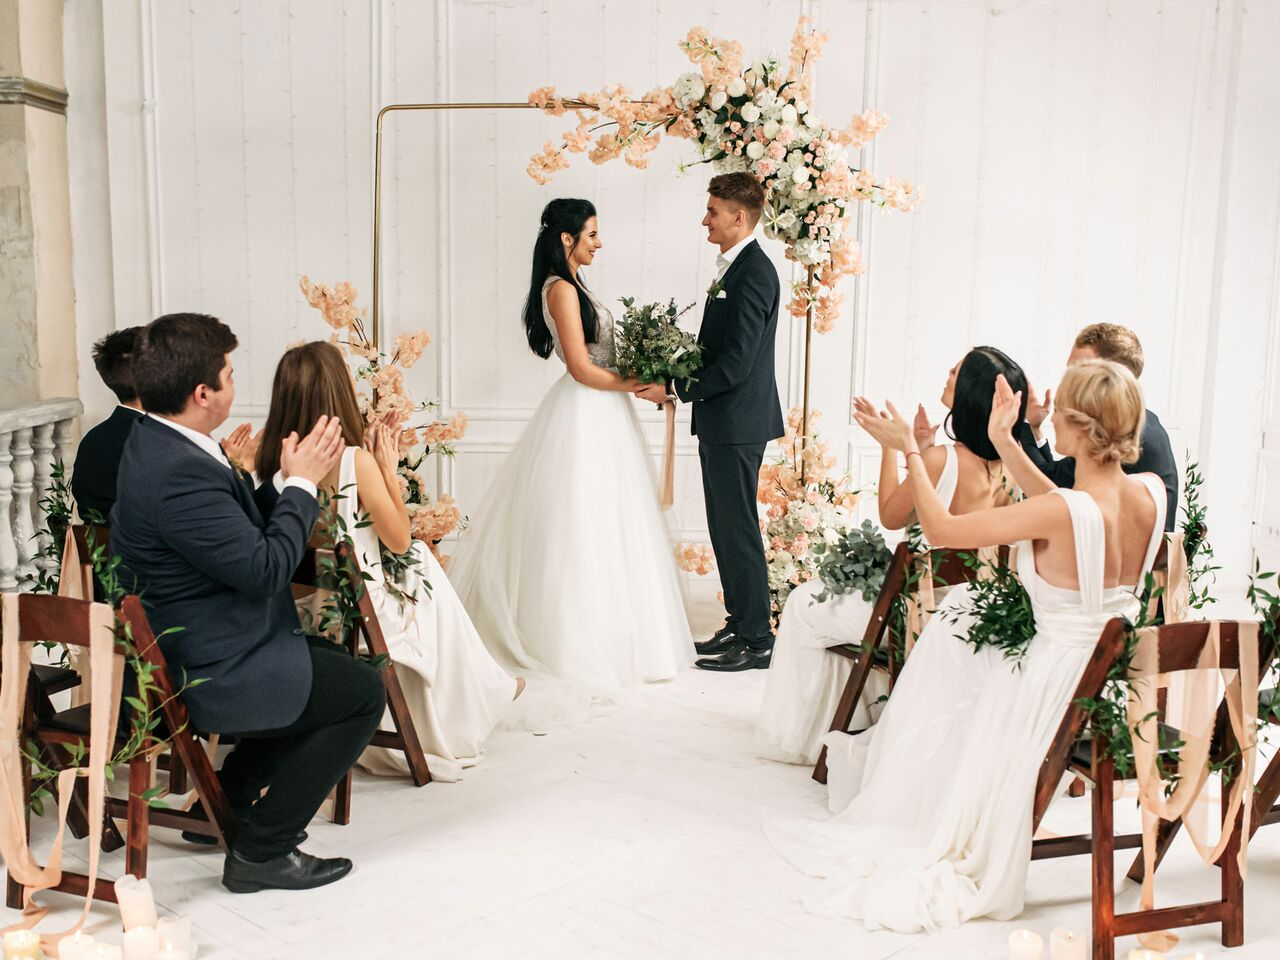 Tips For Creating A Joyous Wedding To Remember!